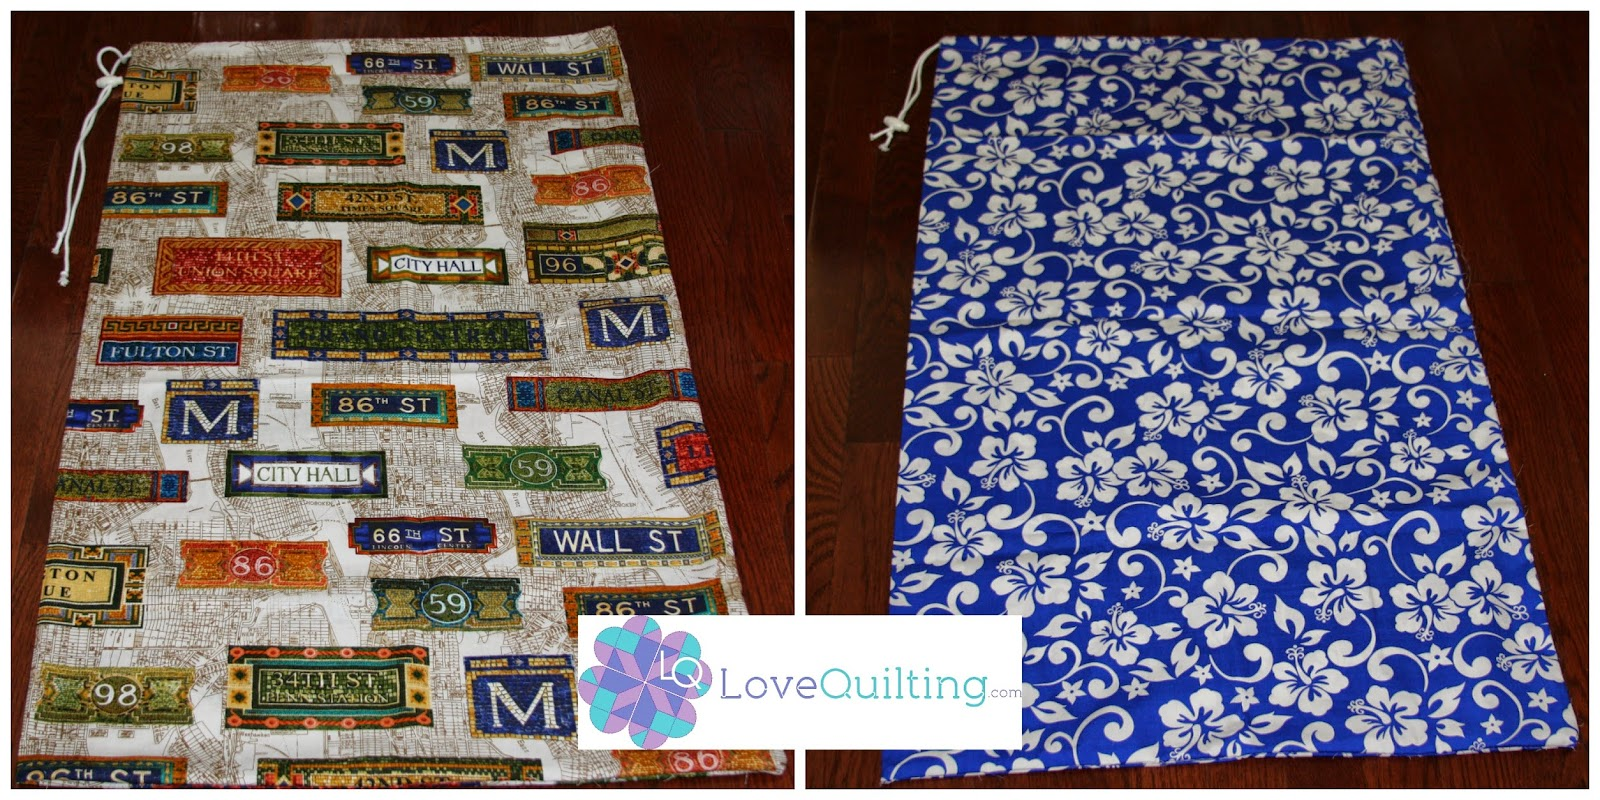 http://www.lovequilting.com/shop/free-lovequilting-com-exclusive/laundry-bag/